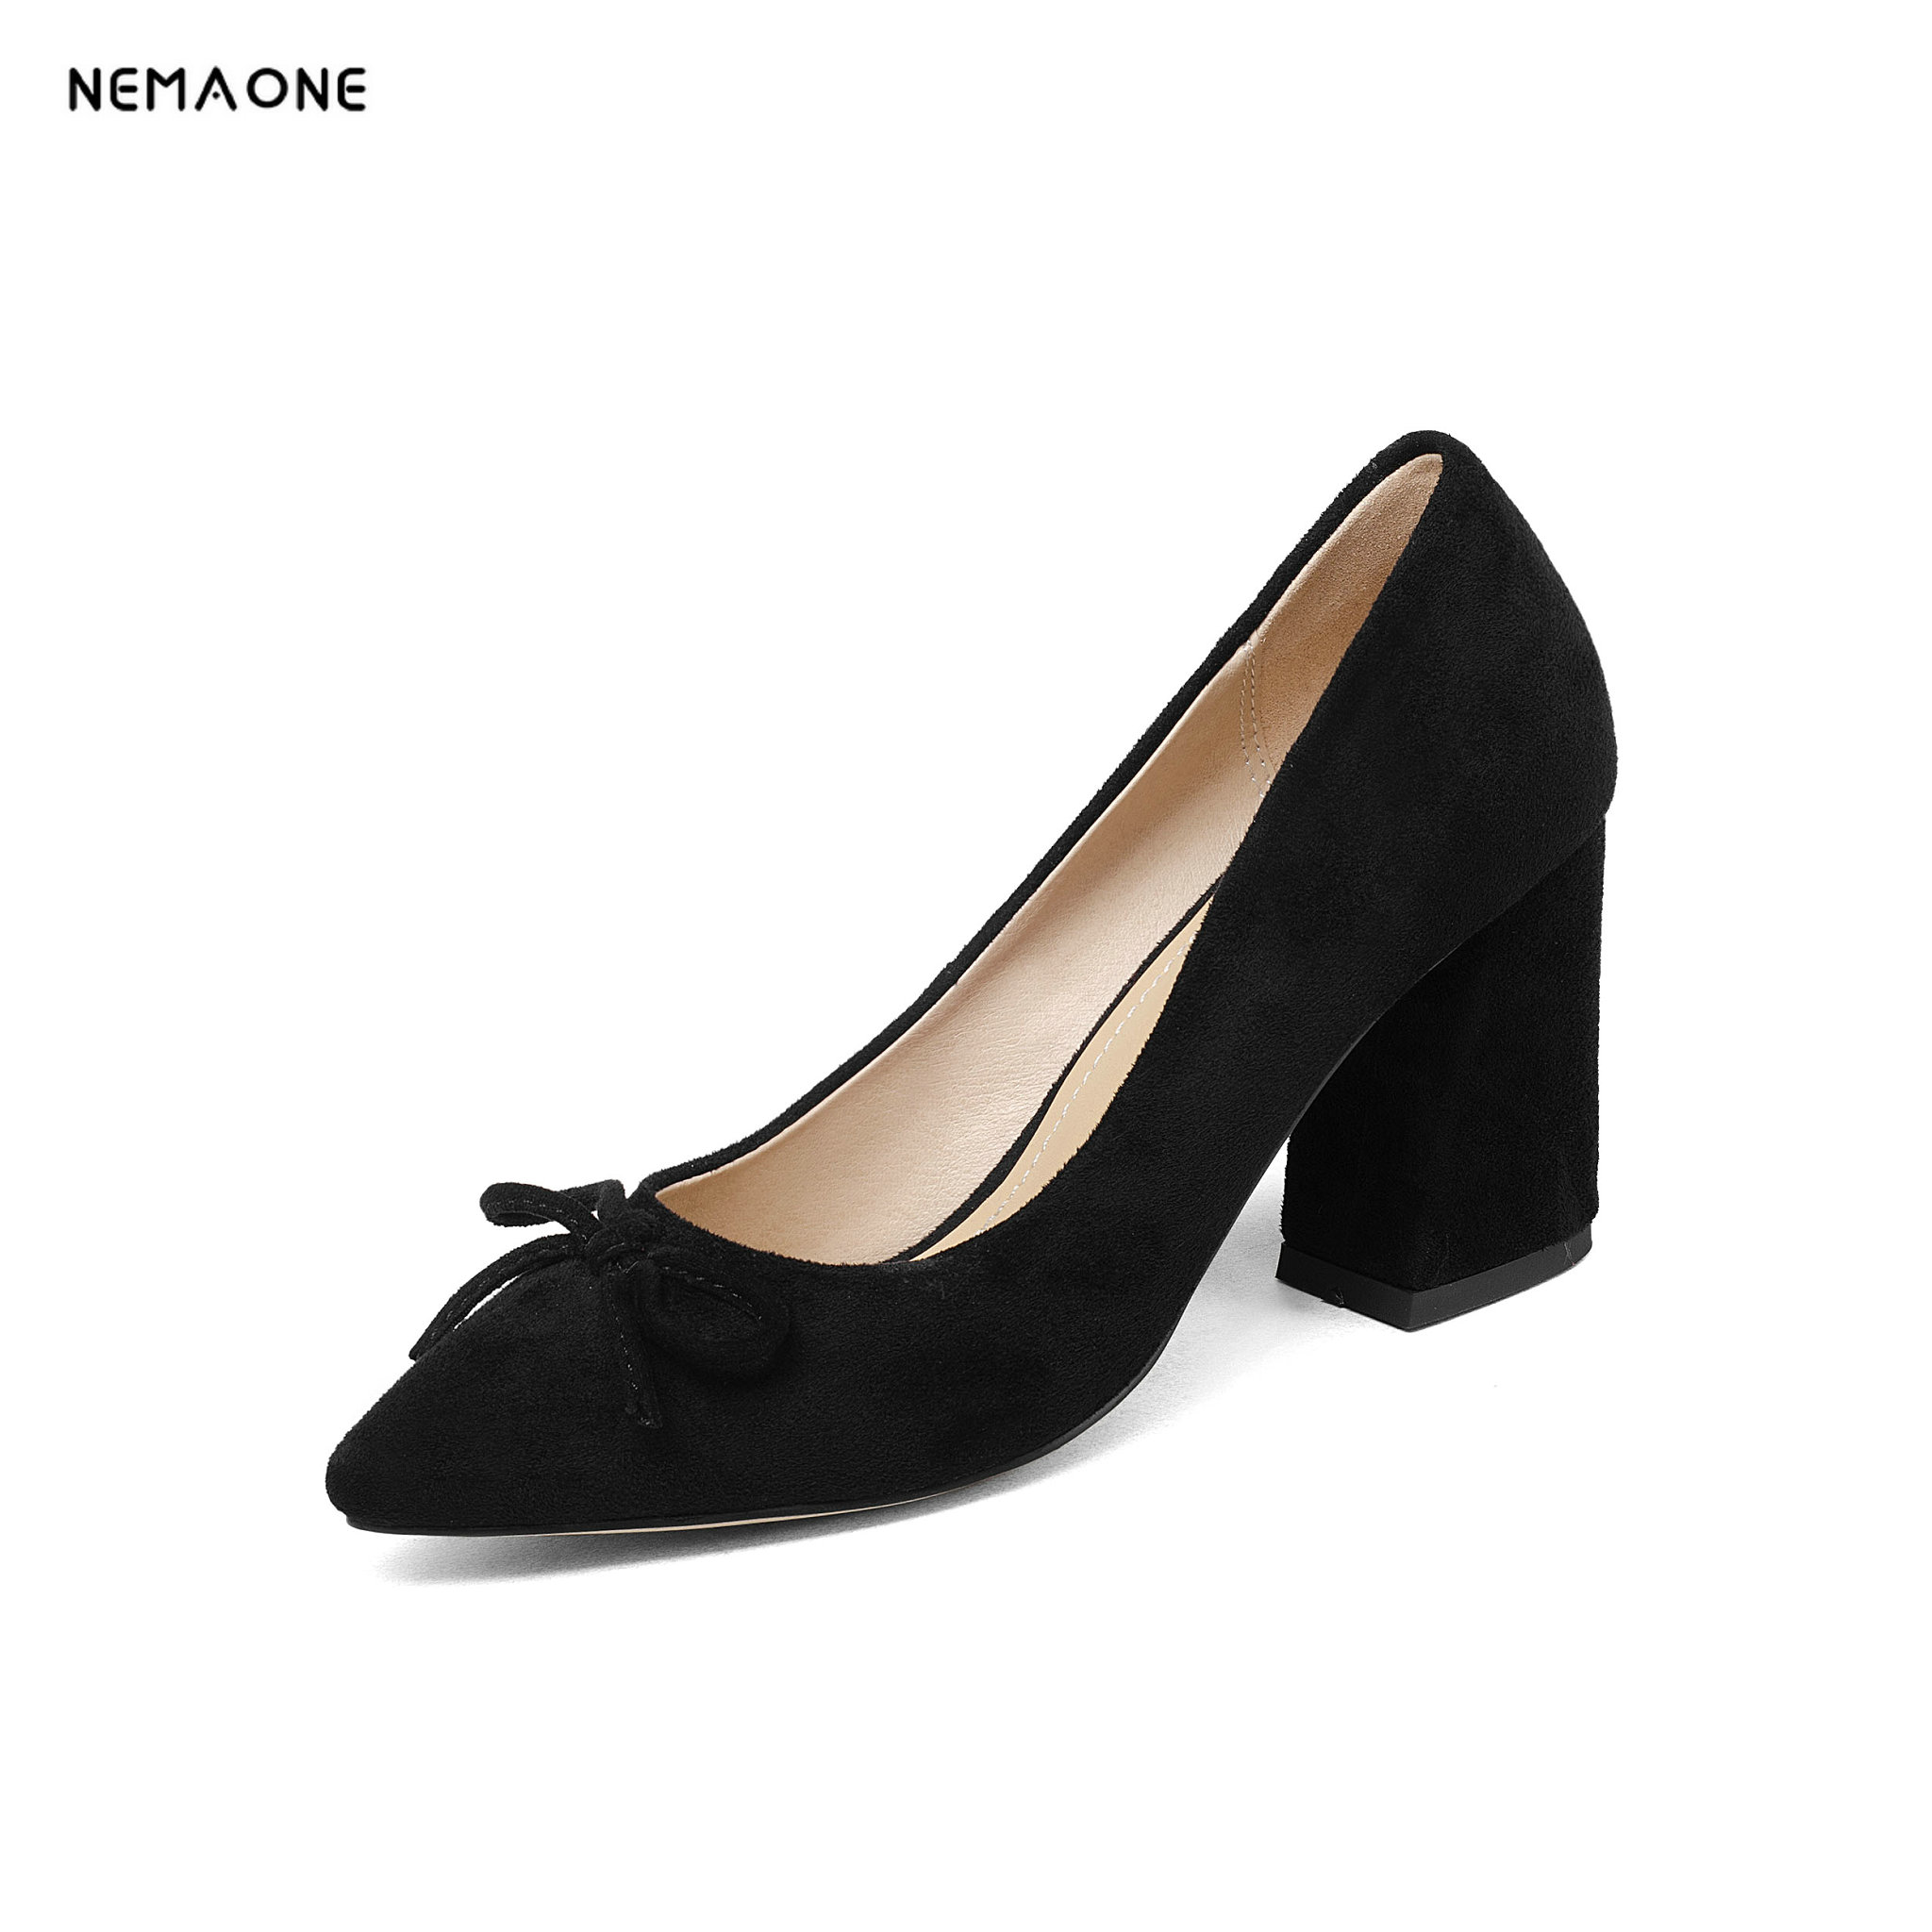 NEMAONE microfiber women pumps fashion high heels pointed toe shoes woman dress party office ladies shoes pumps size